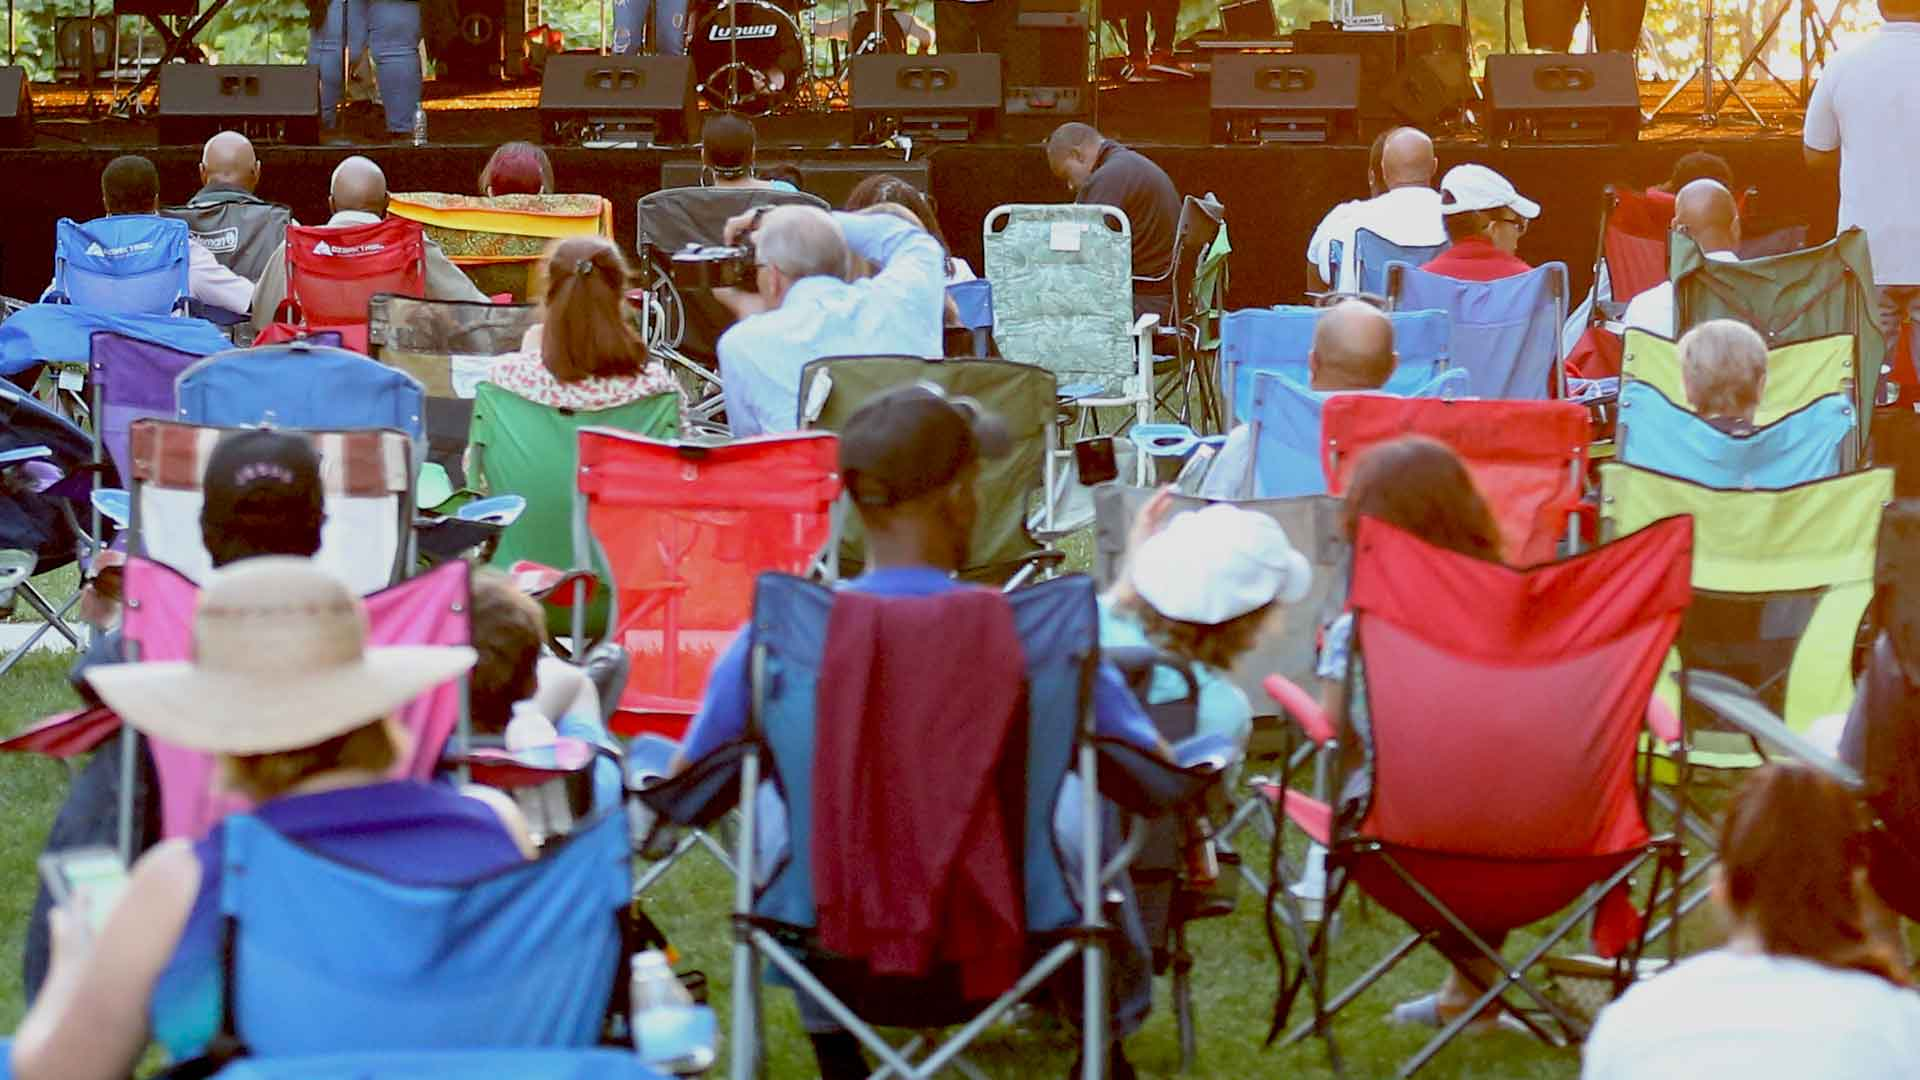 What to bring to an outdoor concert